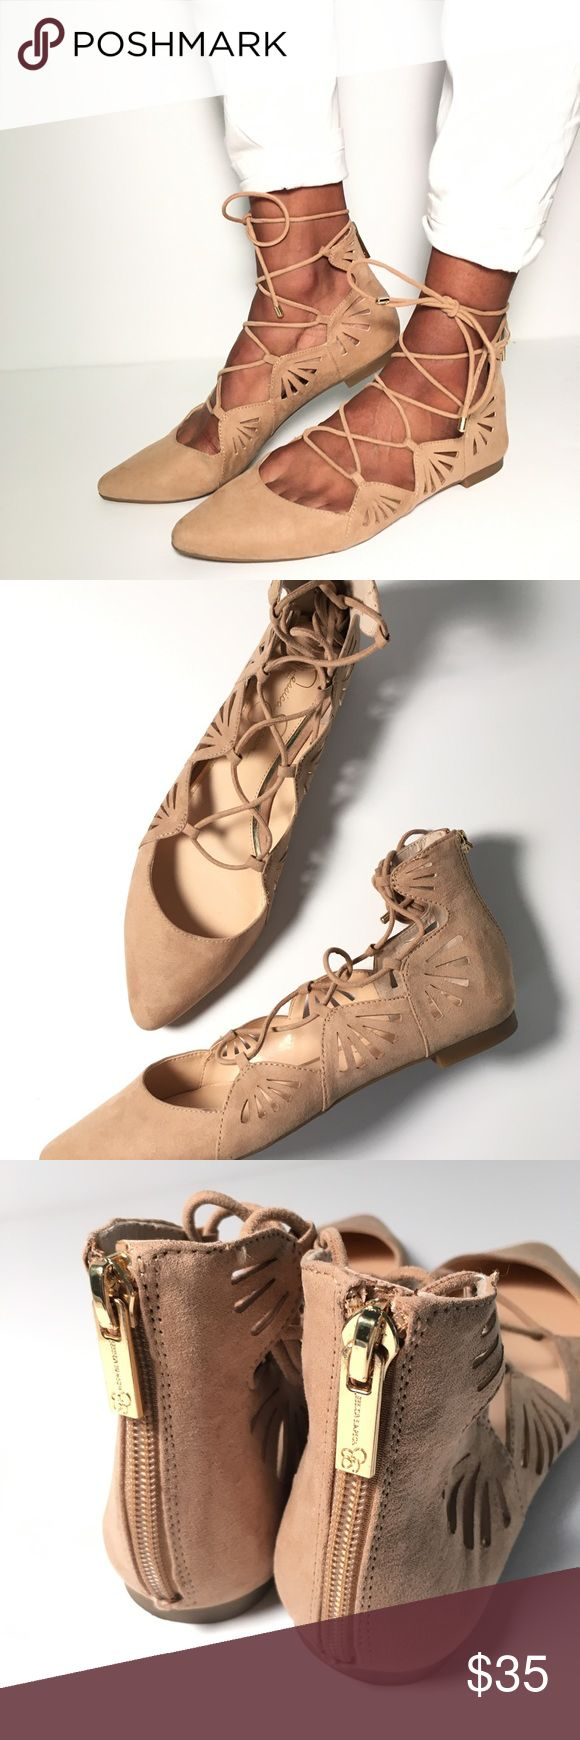 Jessica Simpson Lace Up Fats in Nude Jessica Simpson Lace Up Fats in Nude. Size 8.5 and in excellent condition. Perfect for back to school! Jessica Simpson Shoes Flats & Loafers